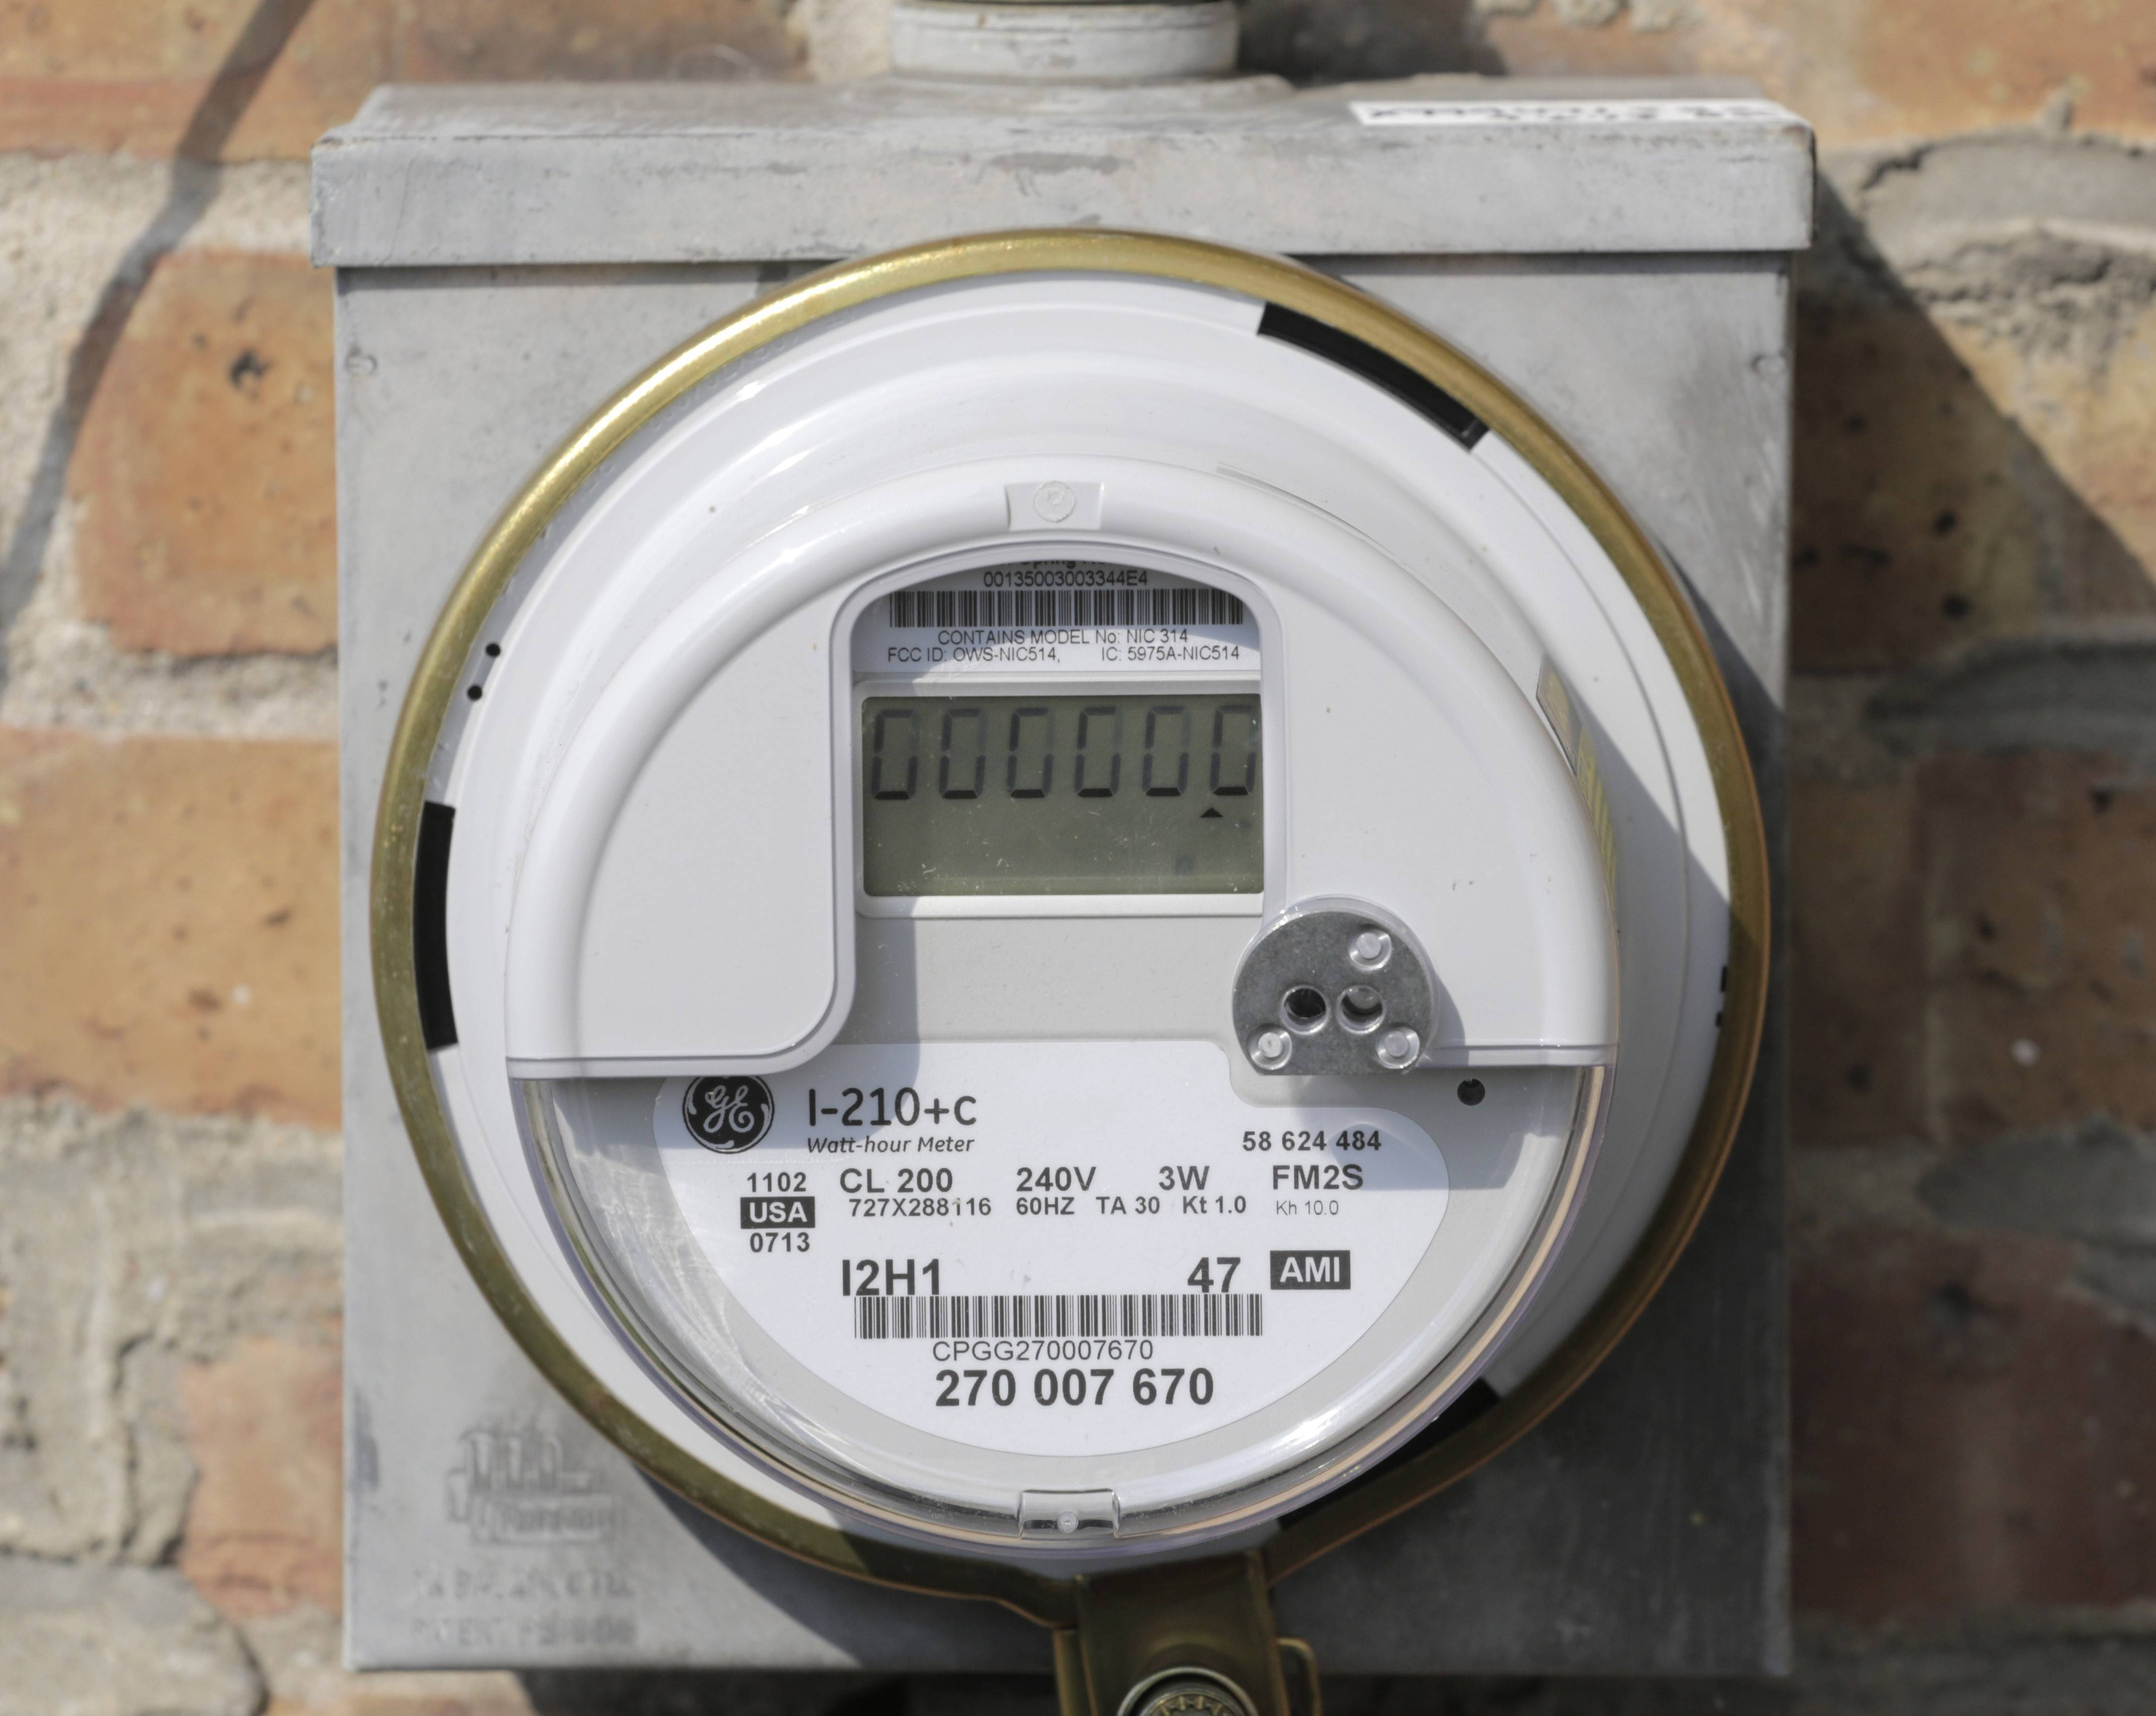 The new meter is a wireless devices that relays information on electricity consumption directly to ComEd.